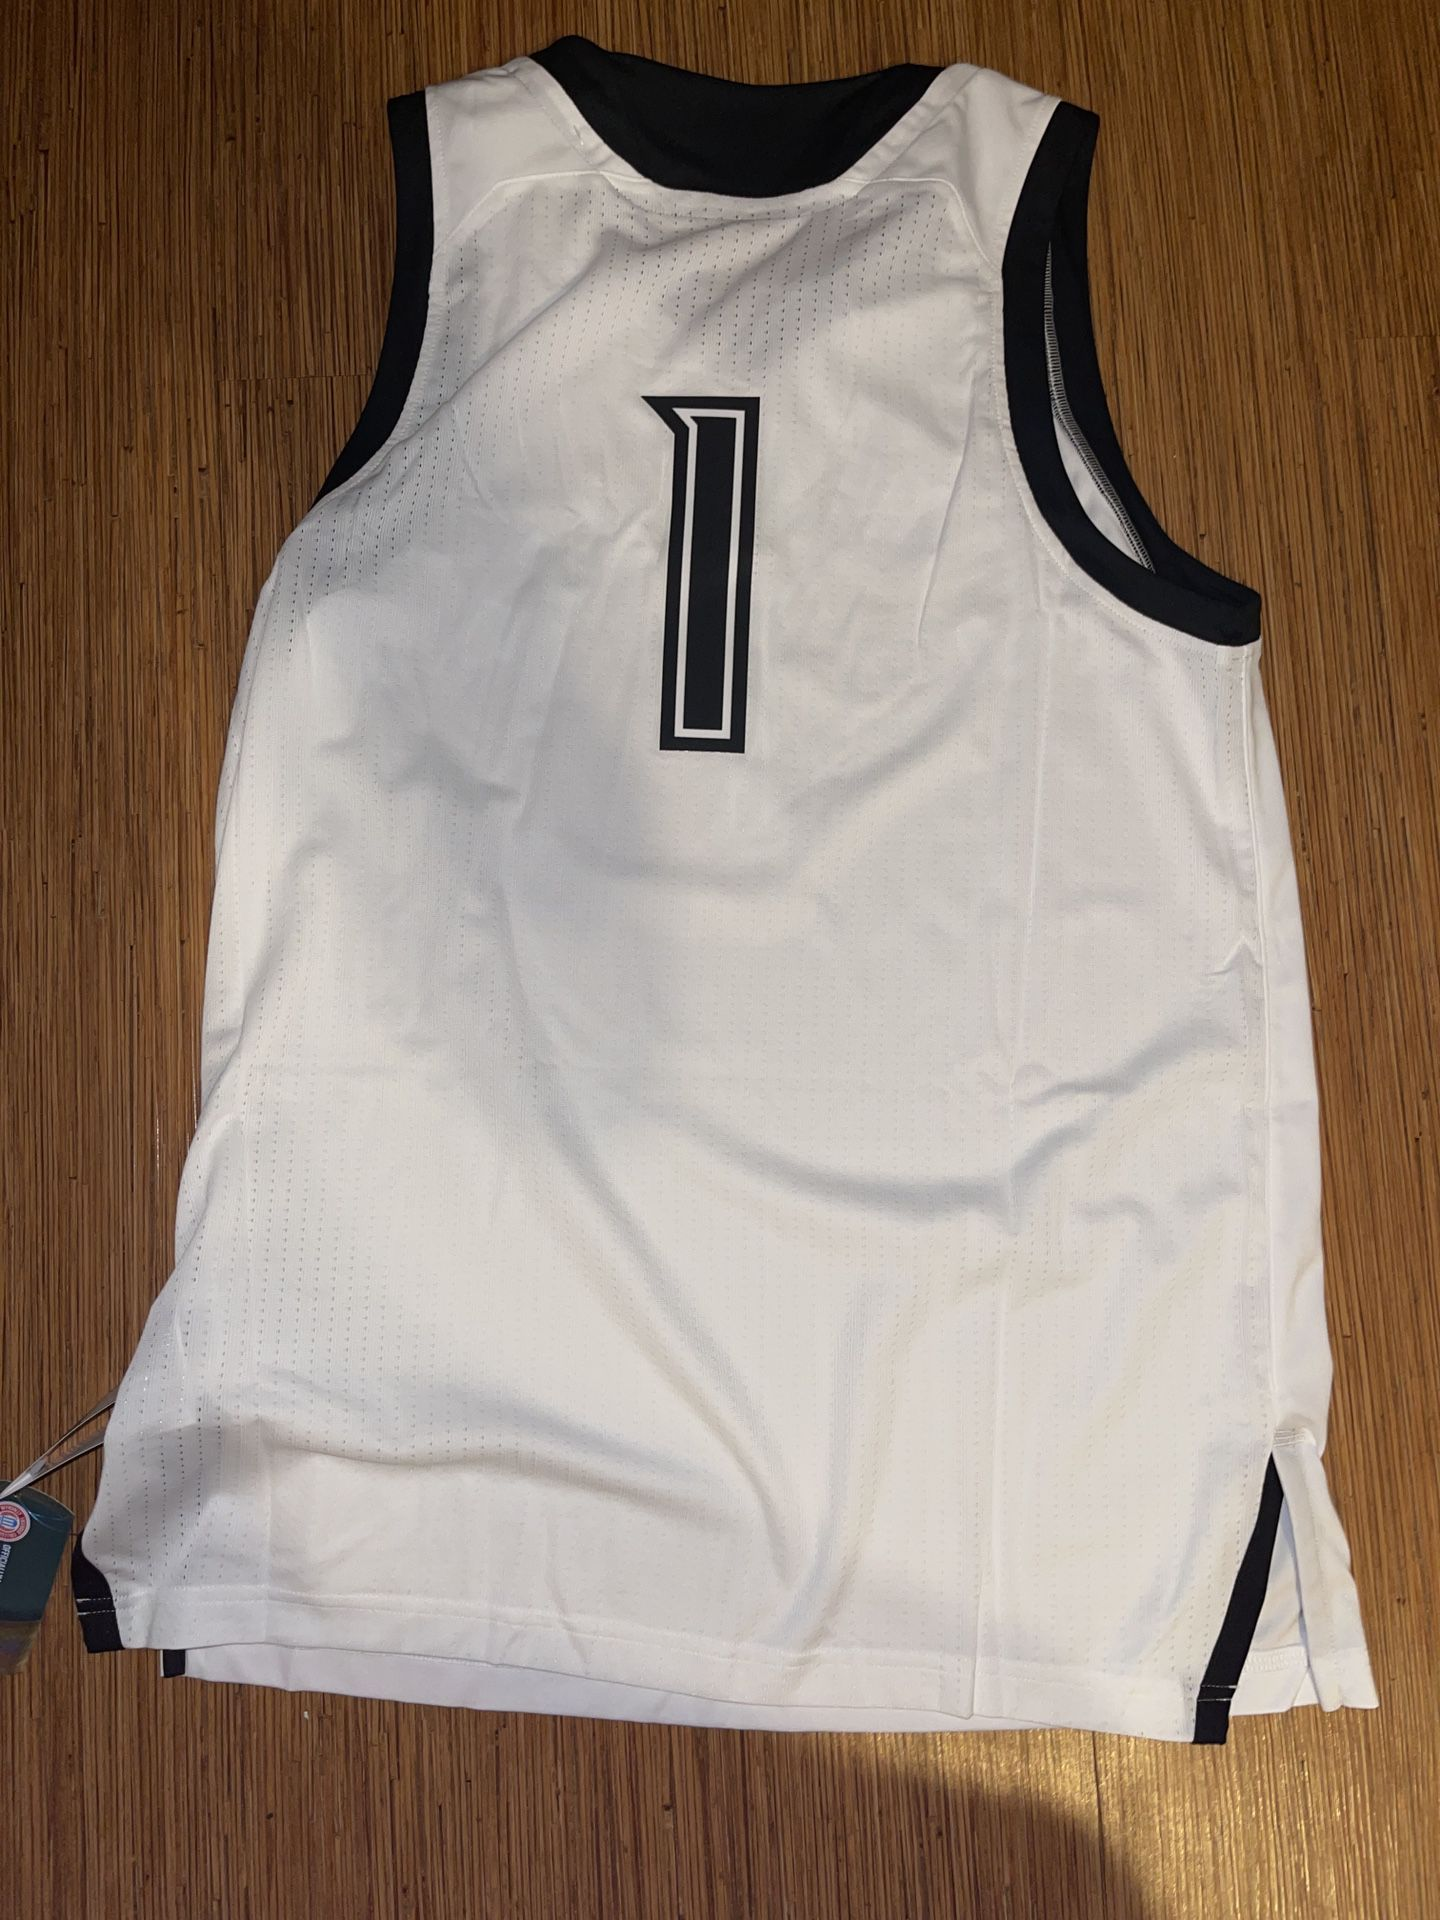 Adidas Louisville authentic jersey Large